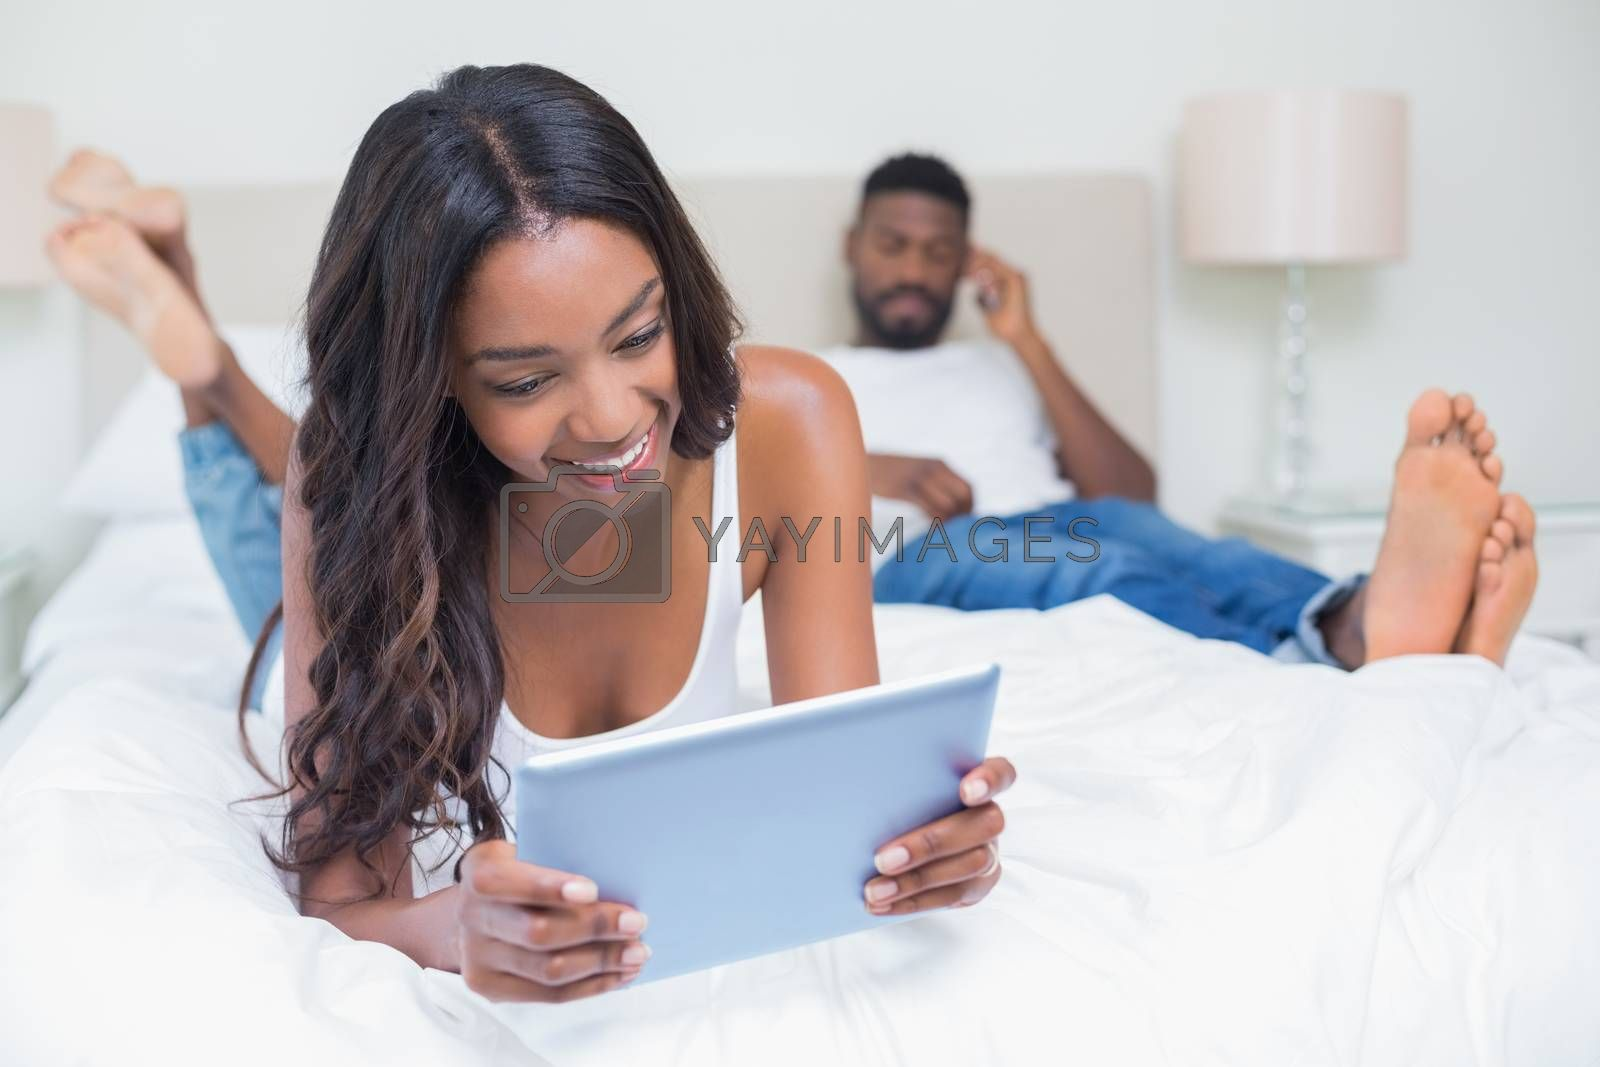 Relaxed couple using technology on bed at home in bedroom